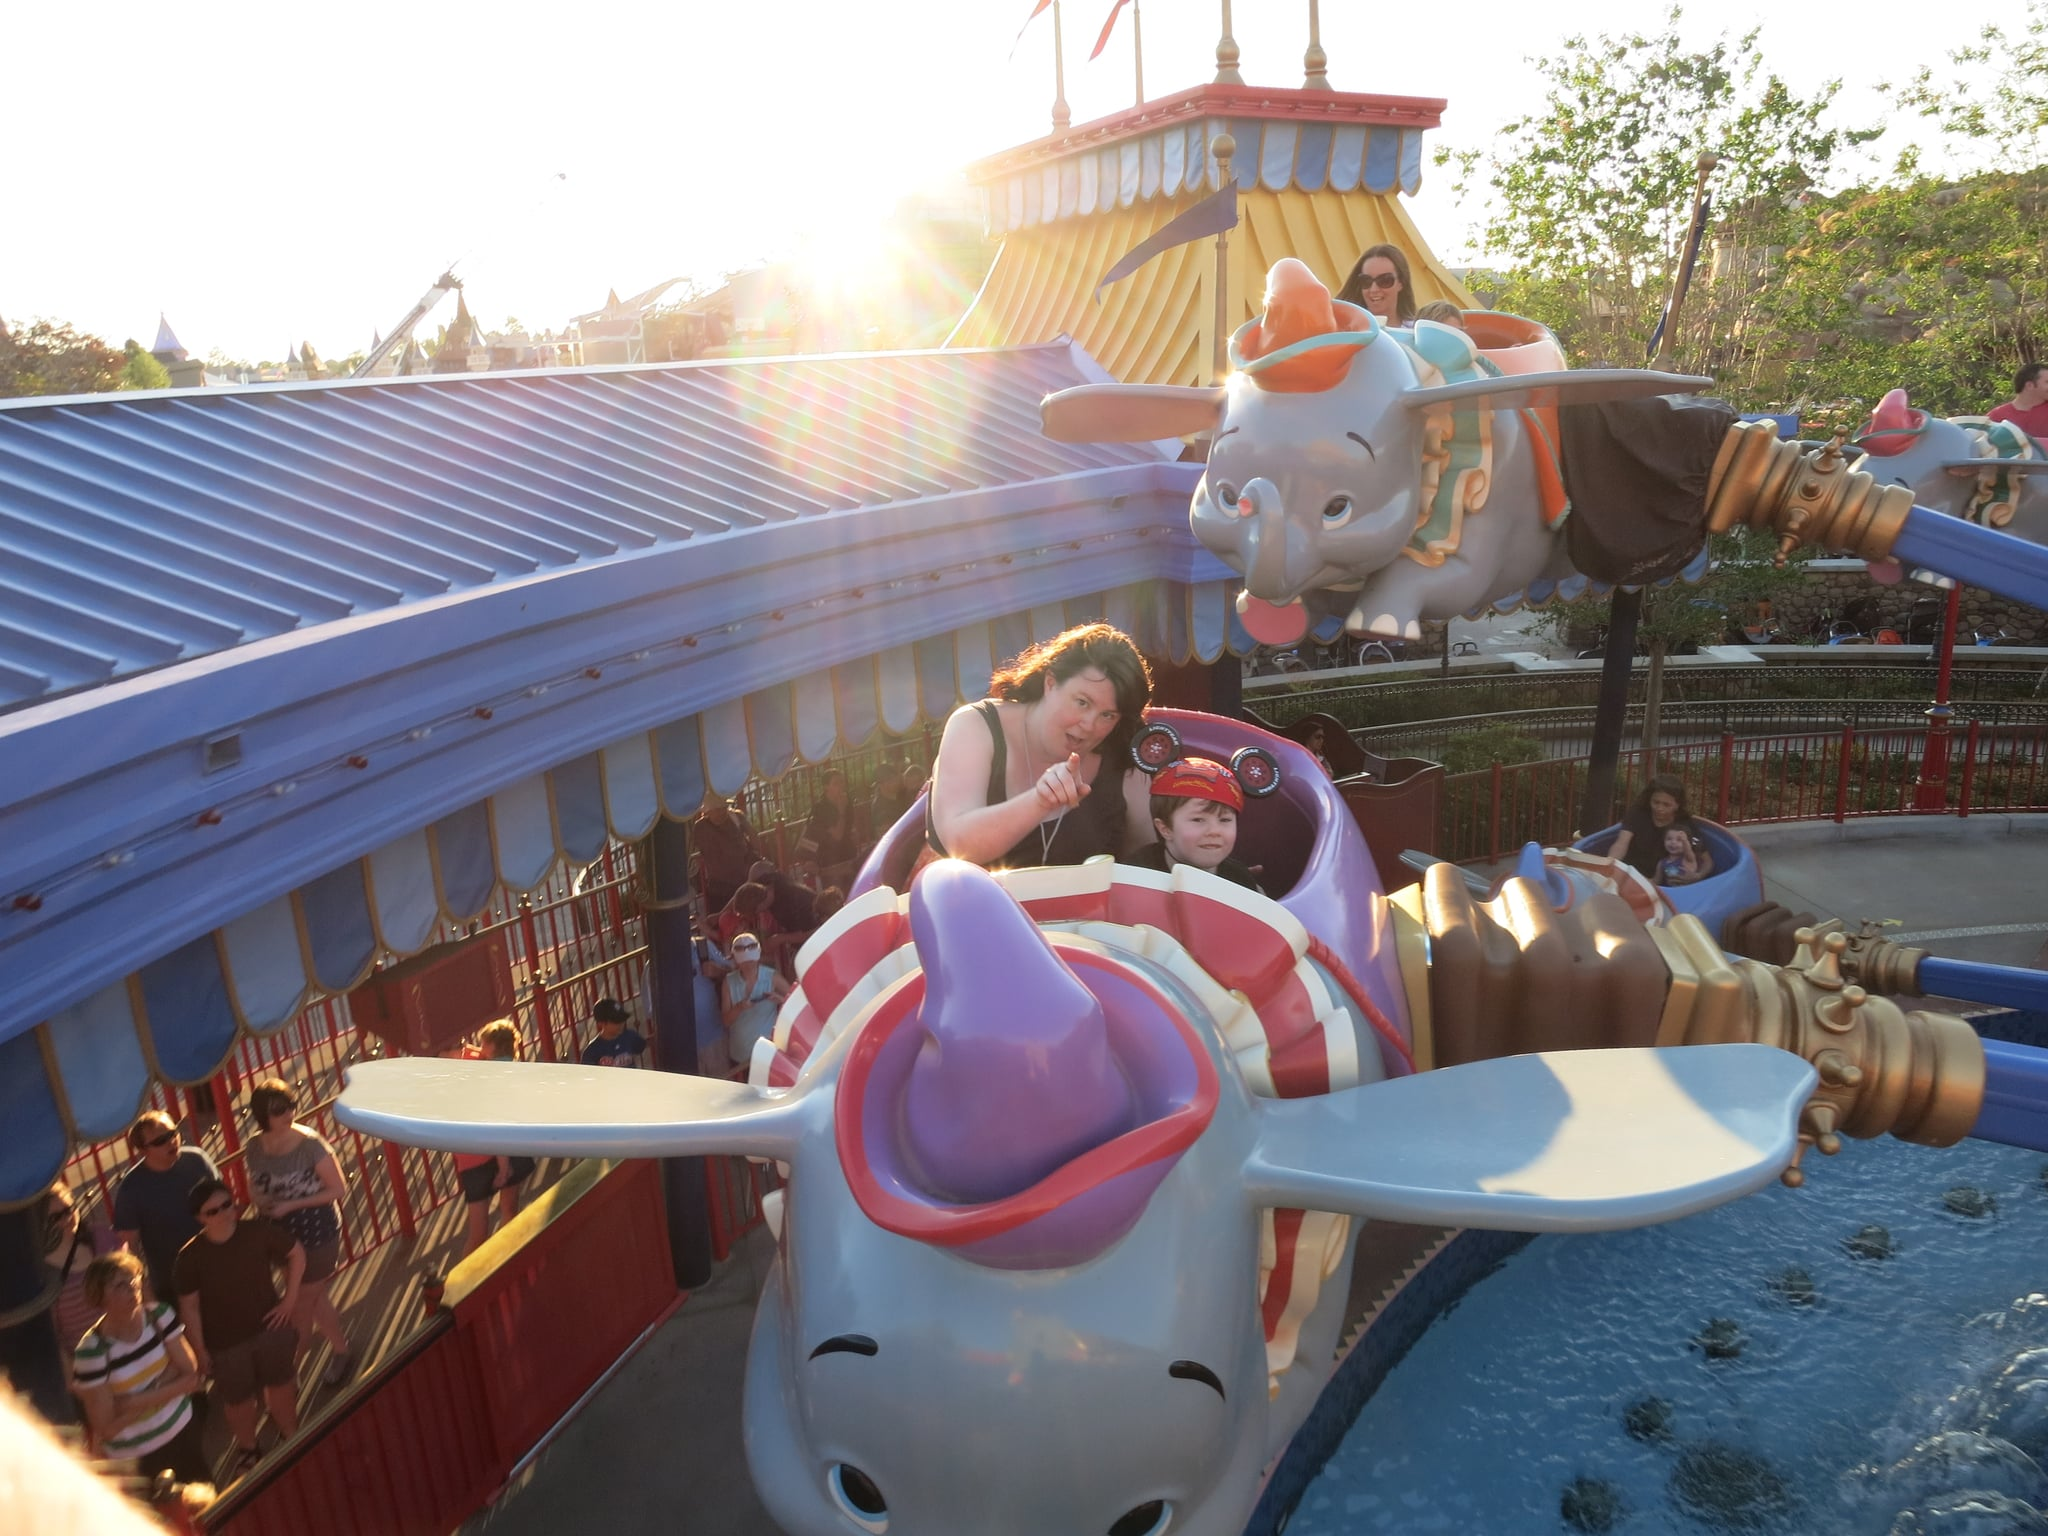 These Are the Pictures You Have to Take of Your Kids at Disney World